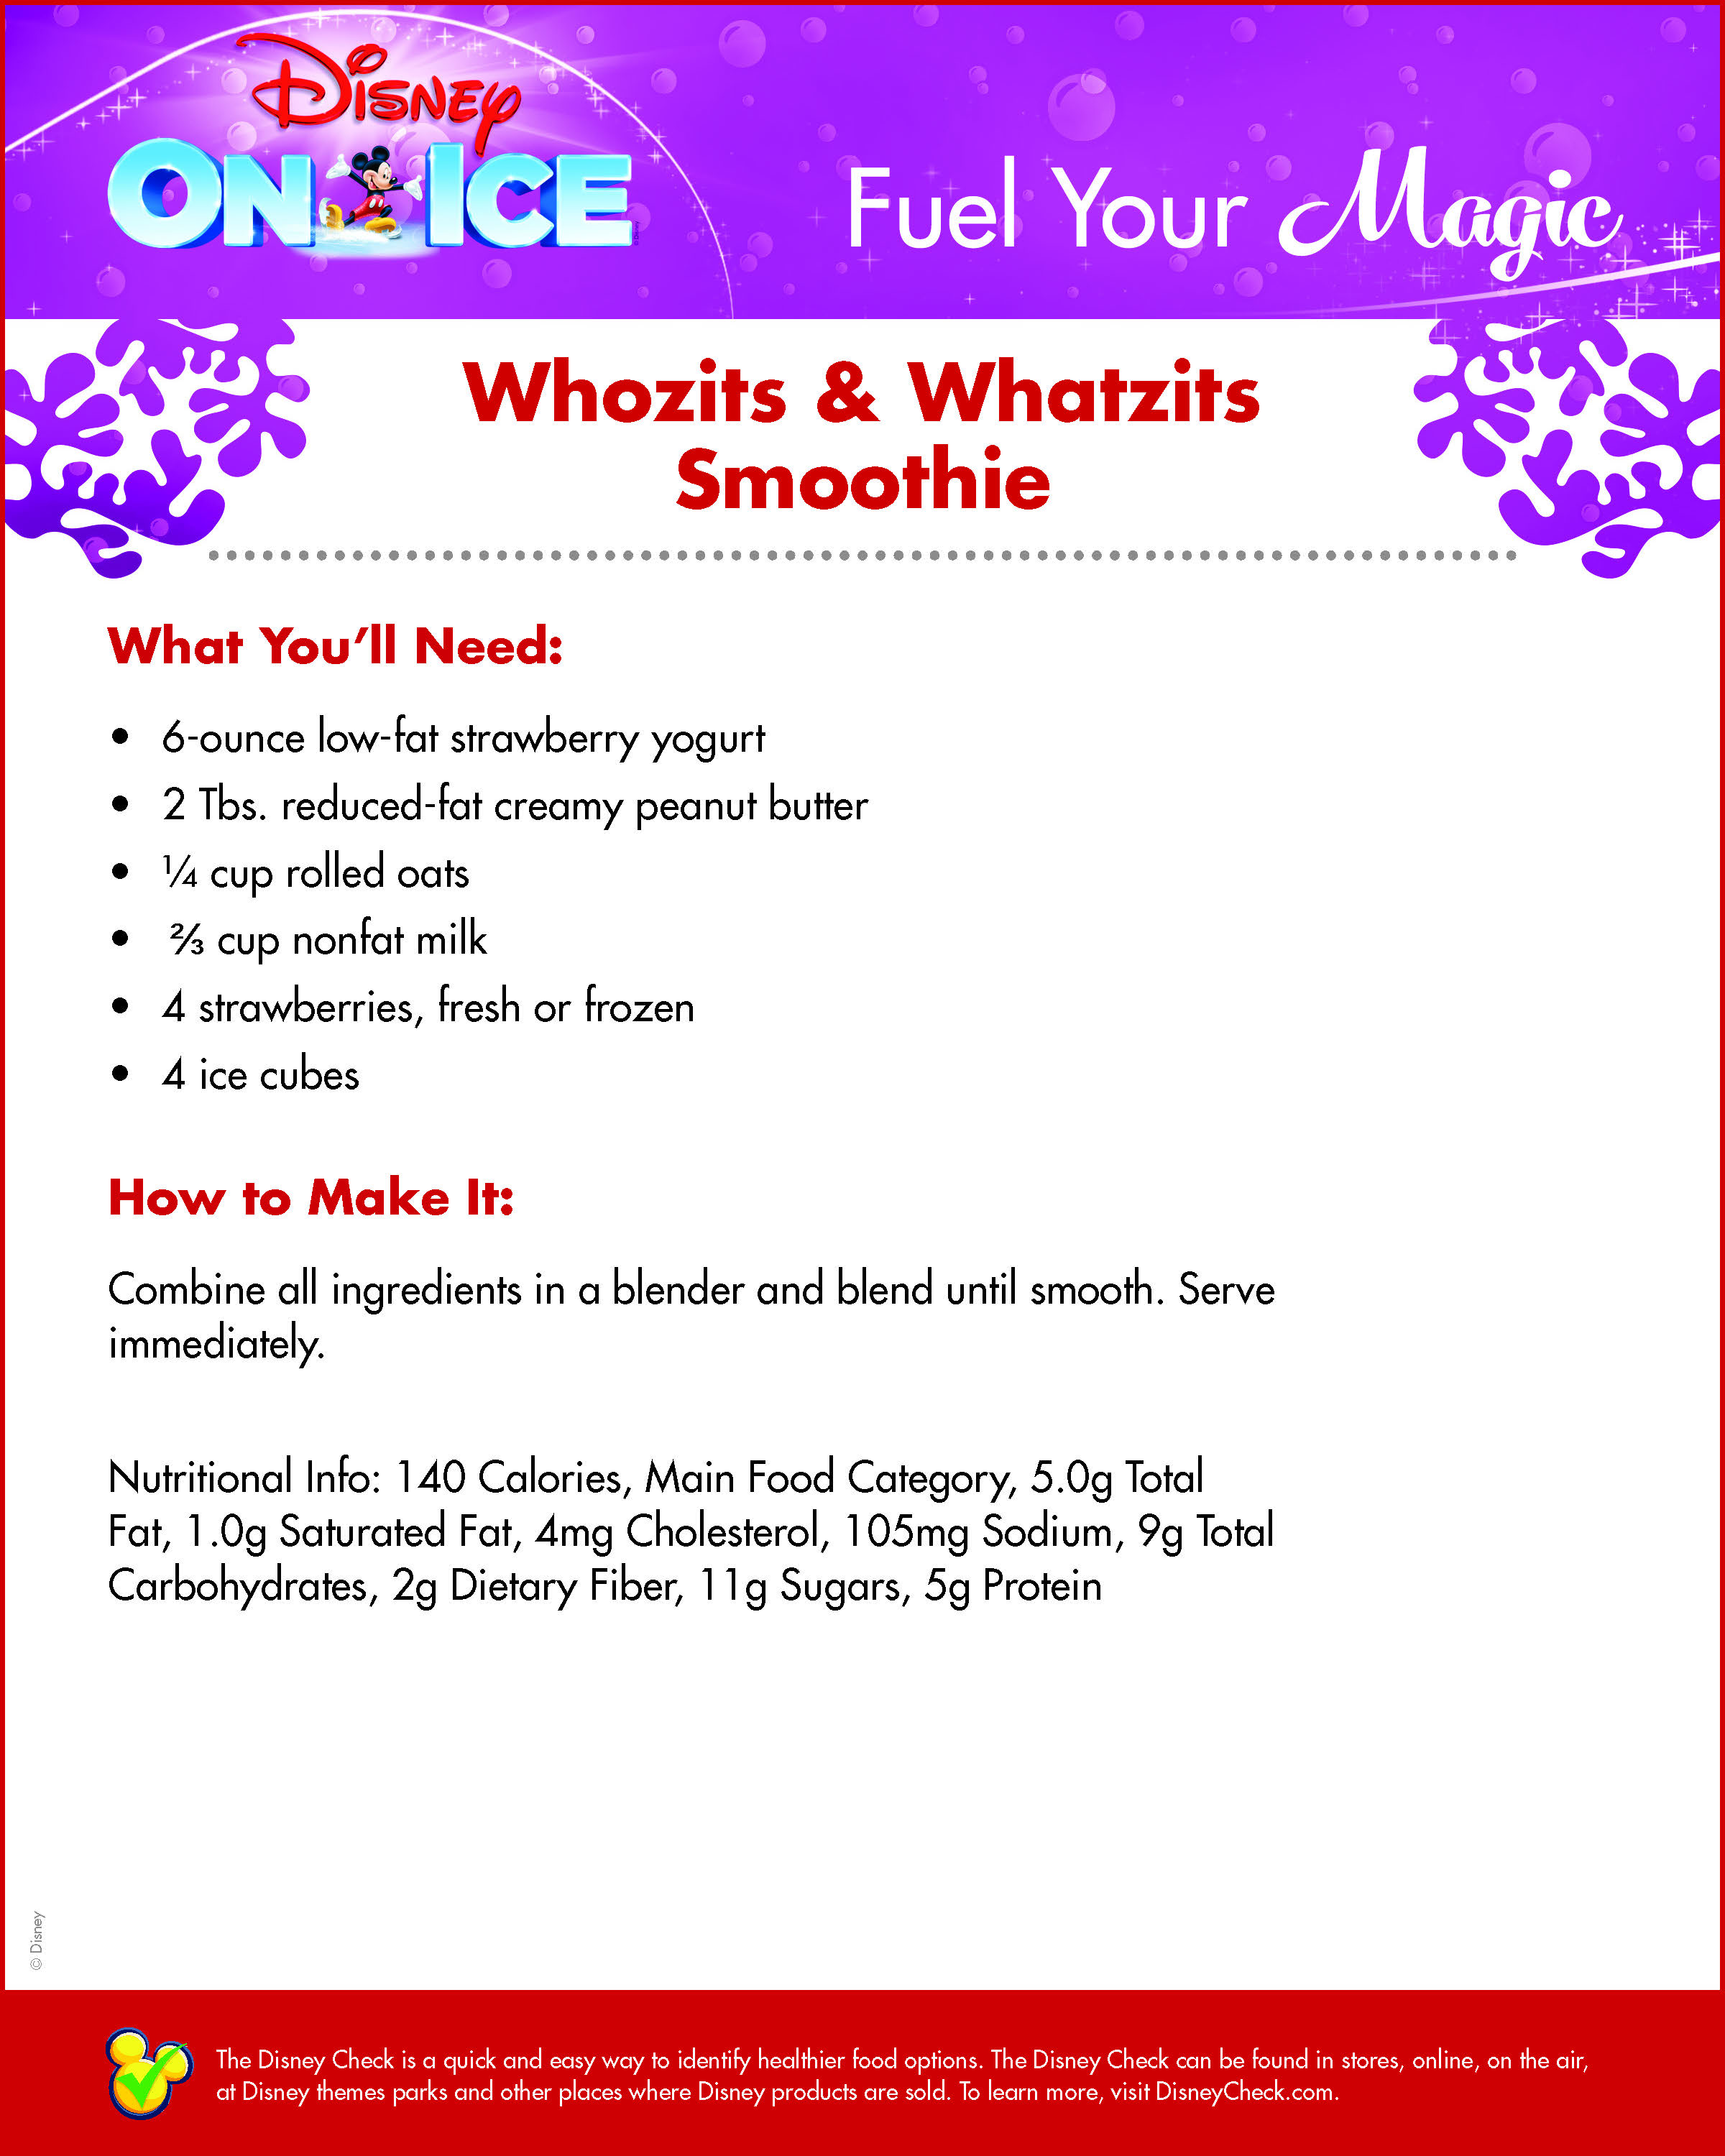 Whozits & Whatzits Smoothie